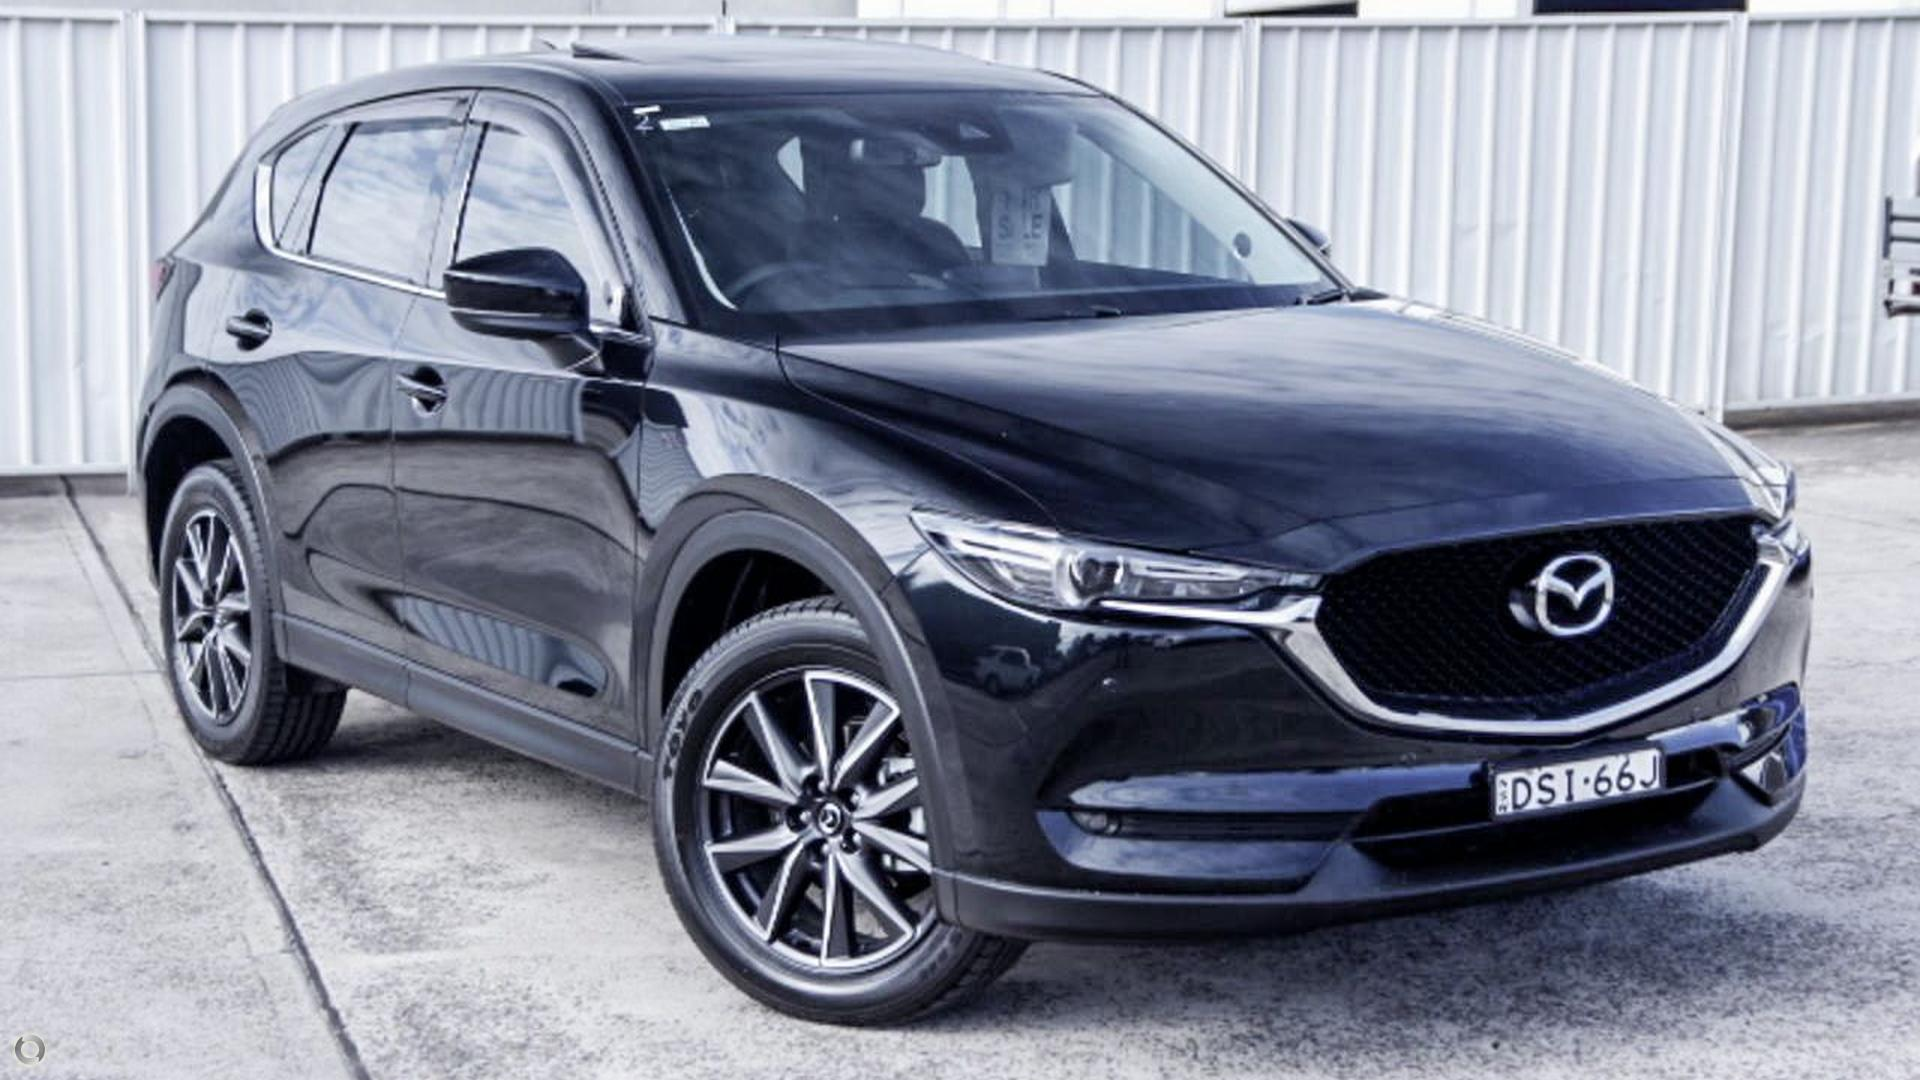 2017 Mazda Cx-5 KF Series